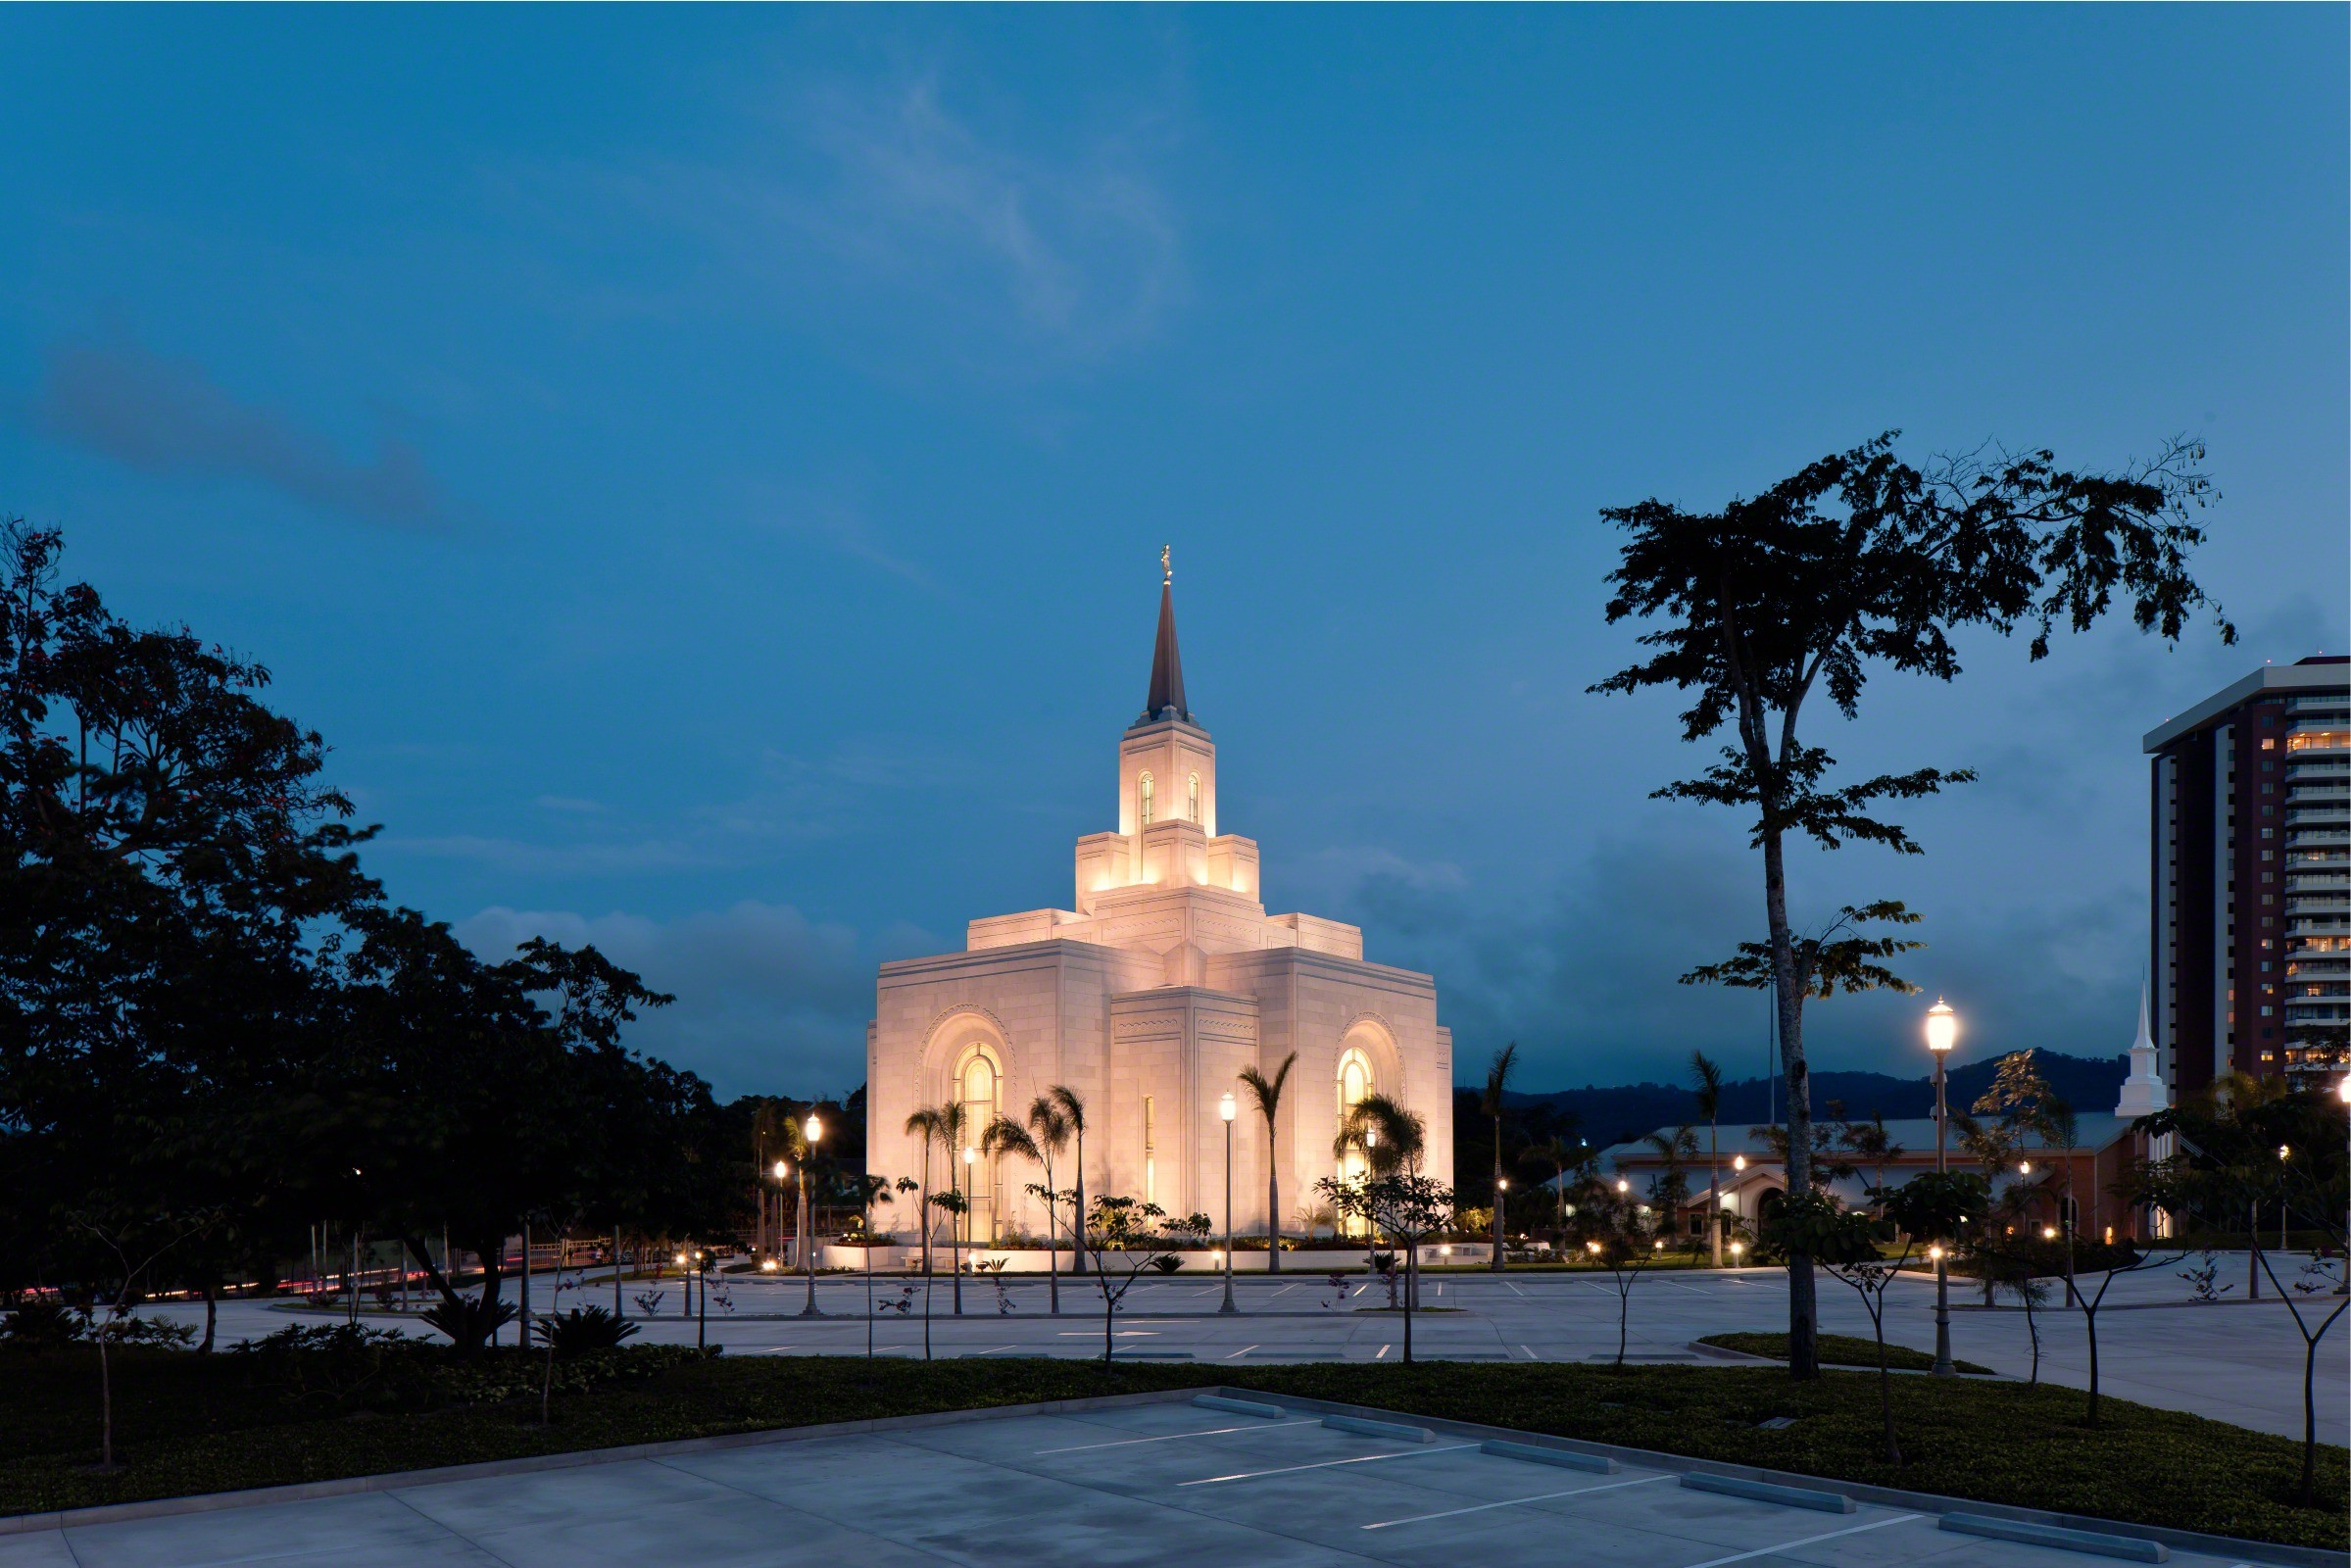 2399x1600 wallpaper.wiki-El-Salvador-Pictures-PIC-WPB006989